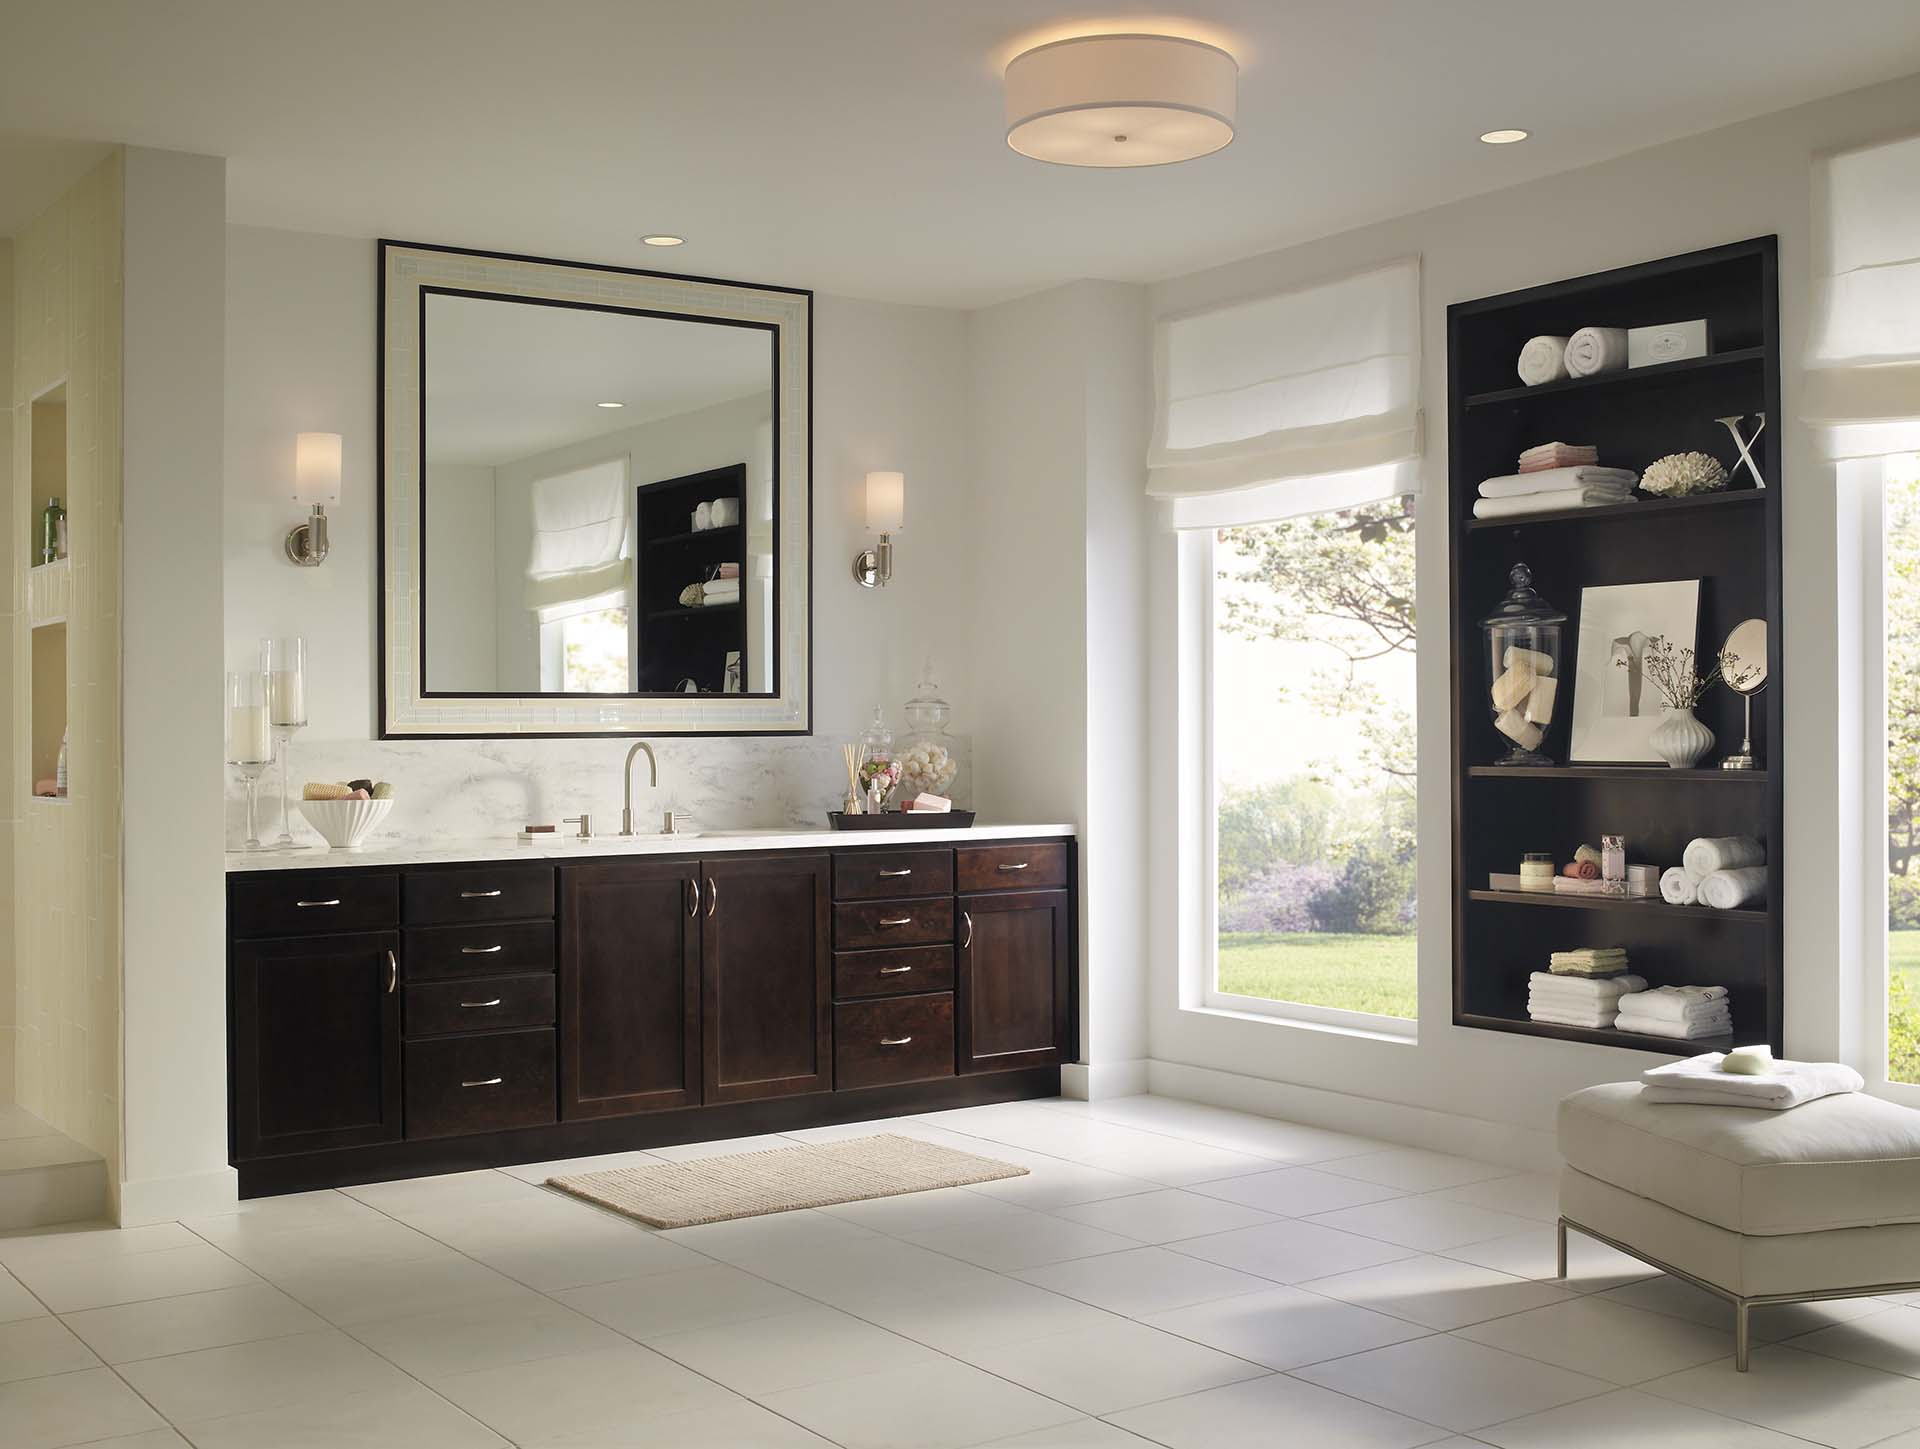 Coles Fine Flooring | Kitchen and Bath Design Center | Design Gallery